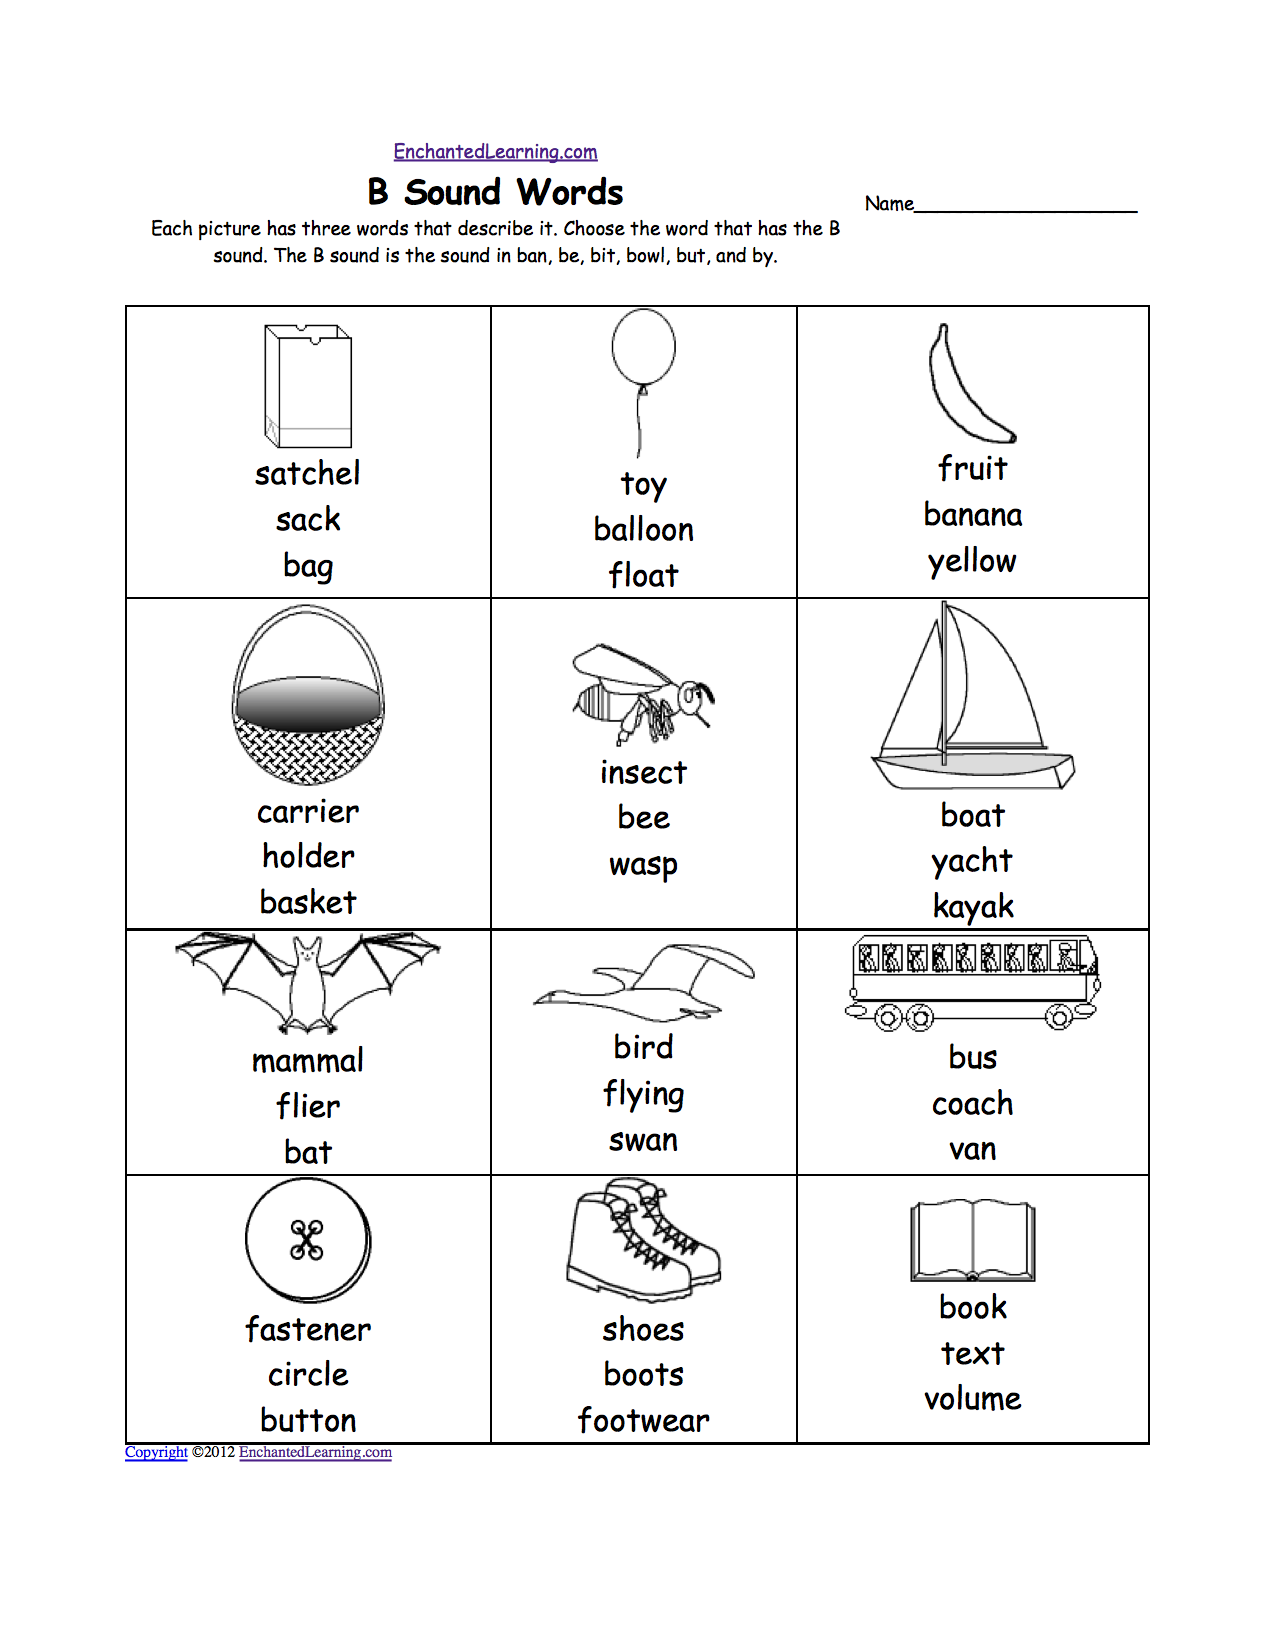 Aldiablosus  Nice Phonics Worksheets Multiple Choice Worksheets To Print  With Outstanding Quotbquot Sound Phonics Worksheet Multiple Choice Each Picture Has Three Words That Describe It Choose The Word That Has A Quotbquot Sound The Quotbquot Sound Is The Sound  With Easy On The Eye Label The Continents Worksheet Also Lewis Structure Worksheets In Addition Blank Bar Graph Worksheet And Language Arts Th Grade Worksheets As Well As Simple Graphing Worksheets Additionally Area Circumference Worksheet From Enchantedlearningcom With Aldiablosus  Outstanding Phonics Worksheets Multiple Choice Worksheets To Print  With Easy On The Eye Quotbquot Sound Phonics Worksheet Multiple Choice Each Picture Has Three Words That Describe It Choose The Word That Has A Quotbquot Sound The Quotbquot Sound Is The Sound  And Nice Label The Continents Worksheet Also Lewis Structure Worksheets In Addition Blank Bar Graph Worksheet From Enchantedlearningcom